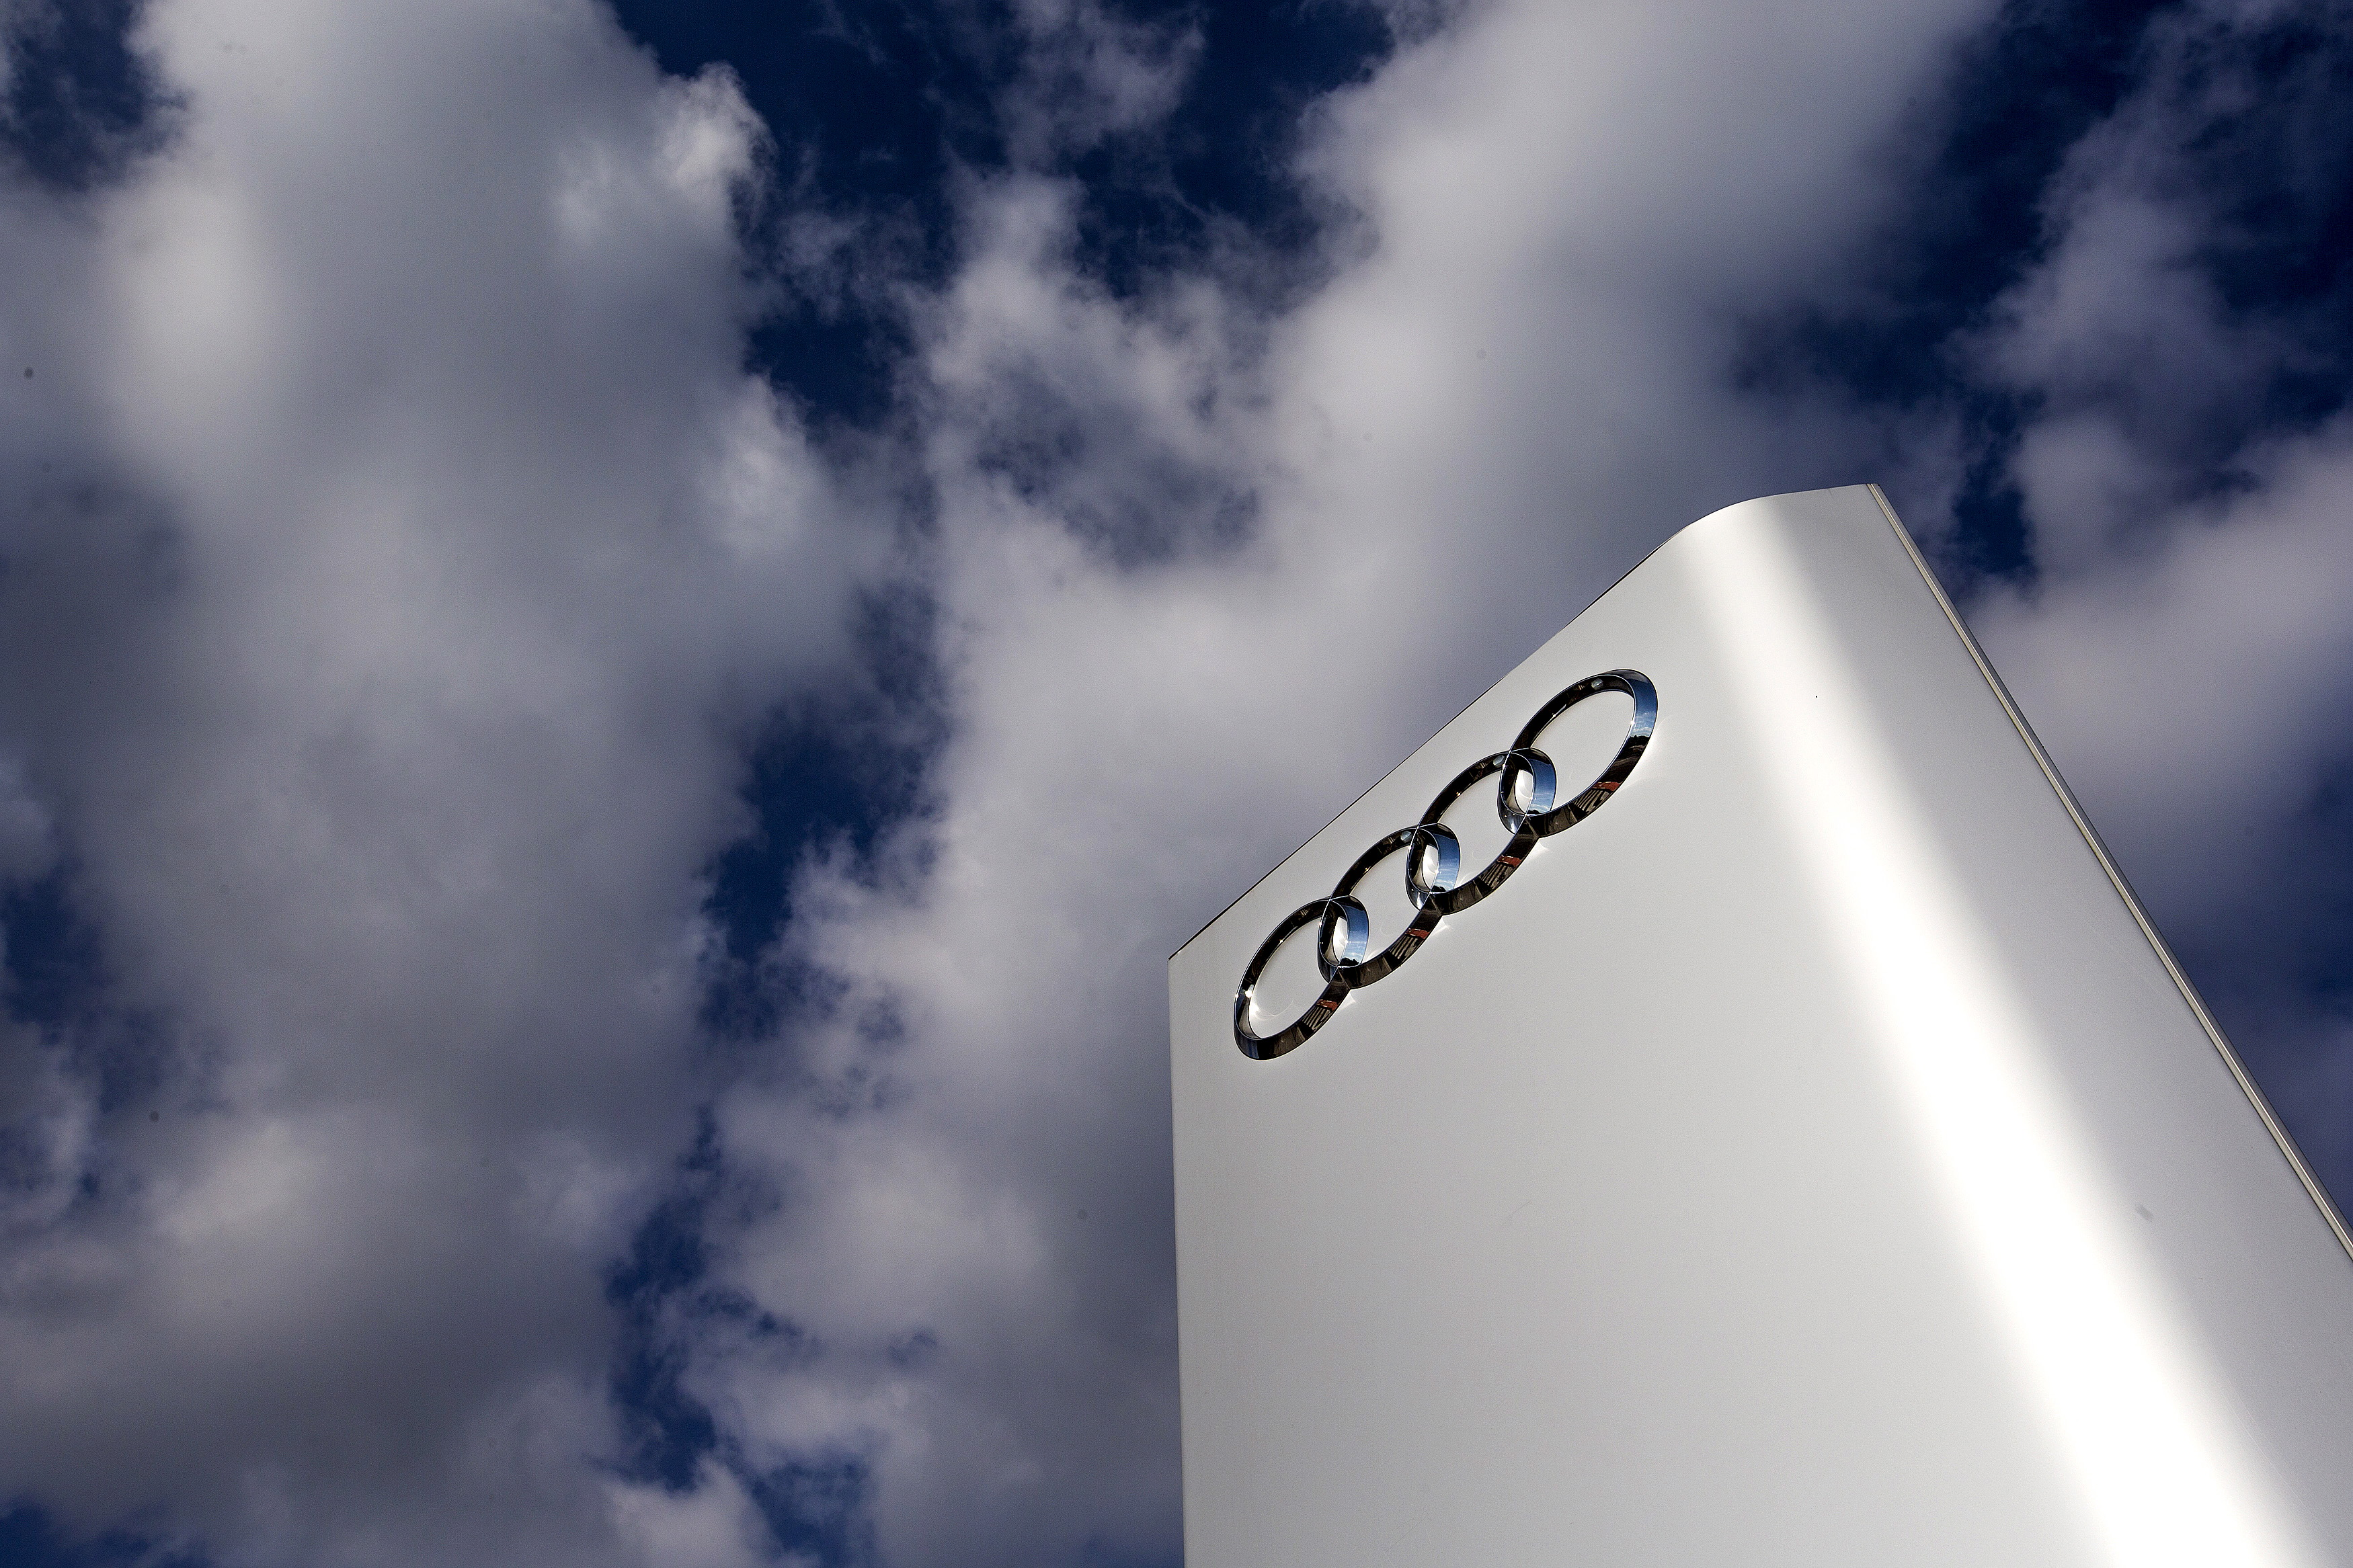 The Audi logo is seen at the entrance of the Audi powerplant in Brussels